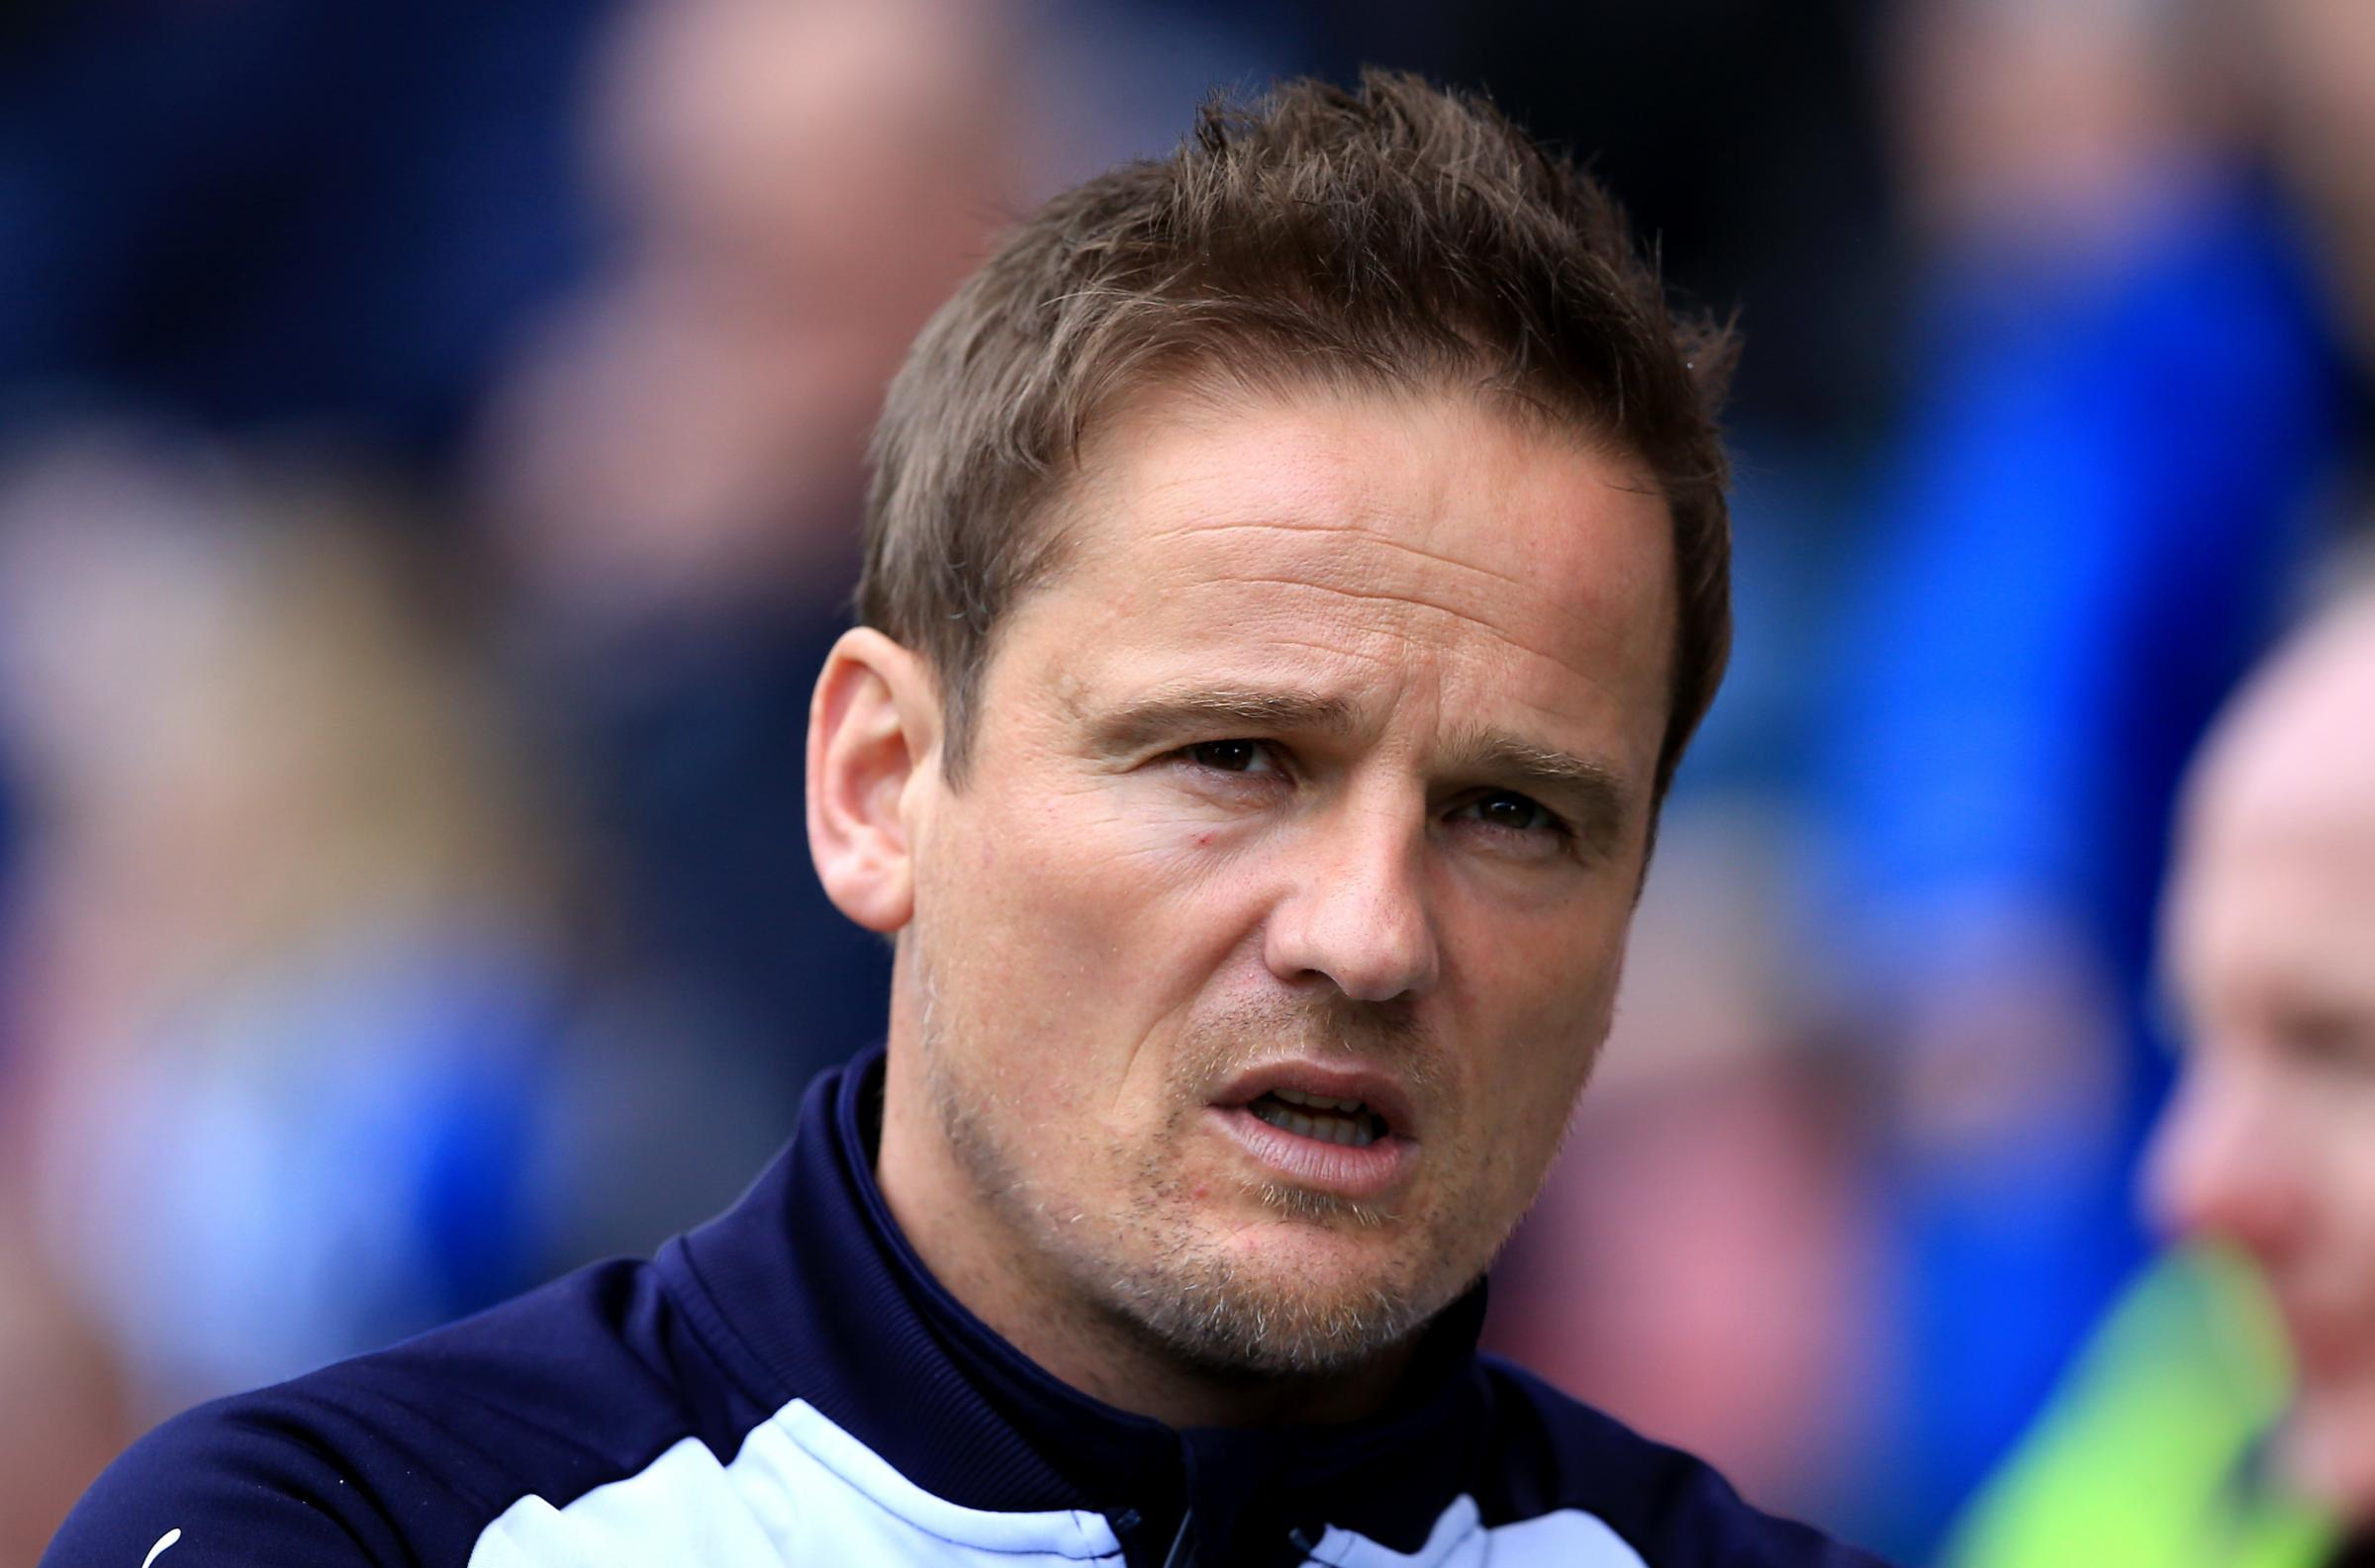 Angry: Notts County's Neal Ardley